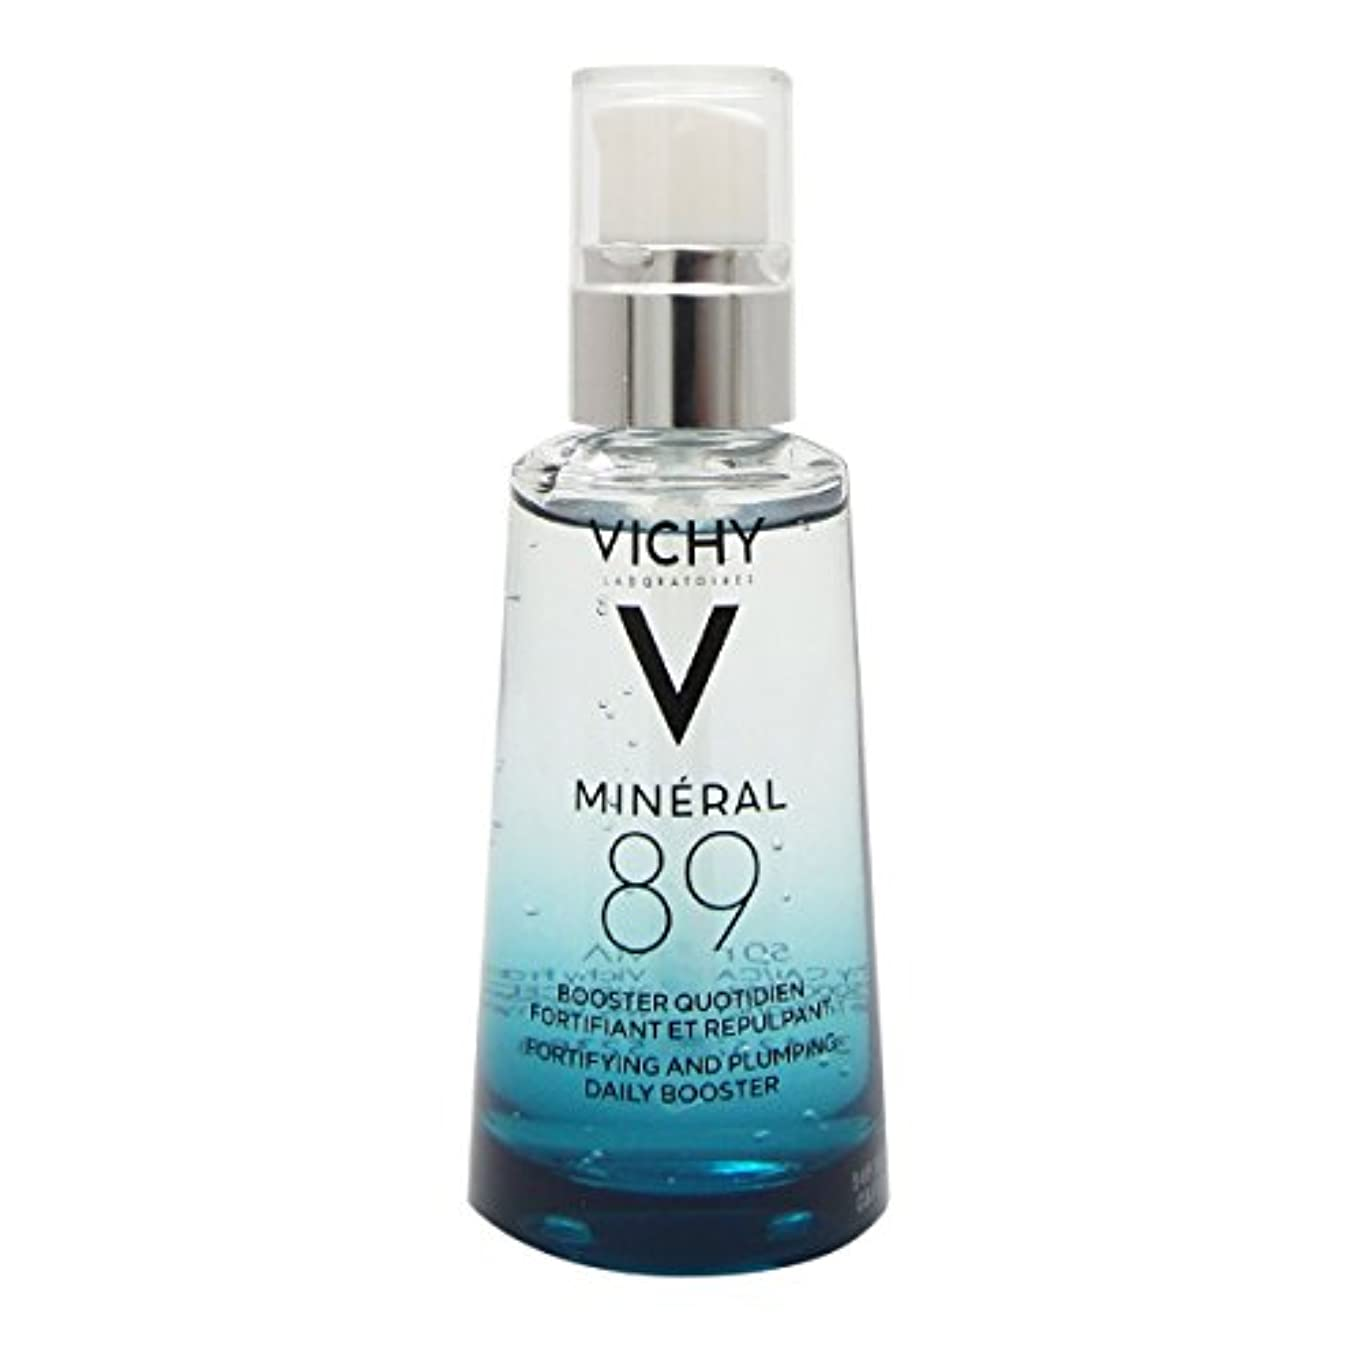 Vichy Mineral 89 Fortifying Concentrate Boost 50ml [並行輸入品]